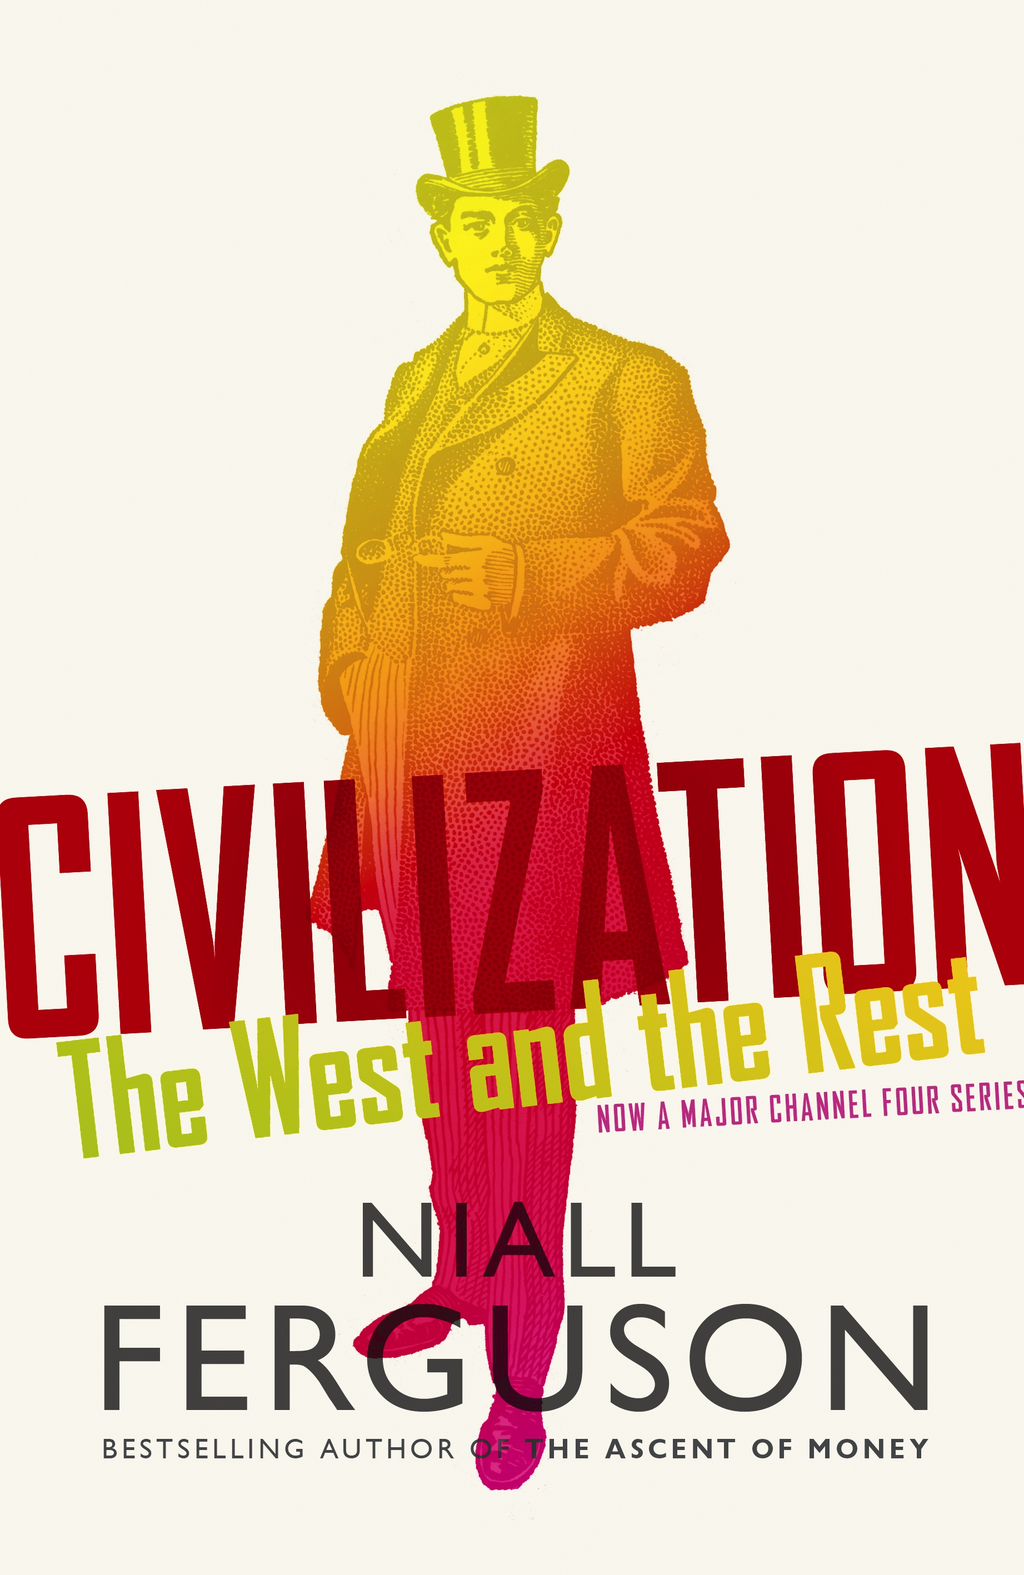 Civilization The West and the Rest